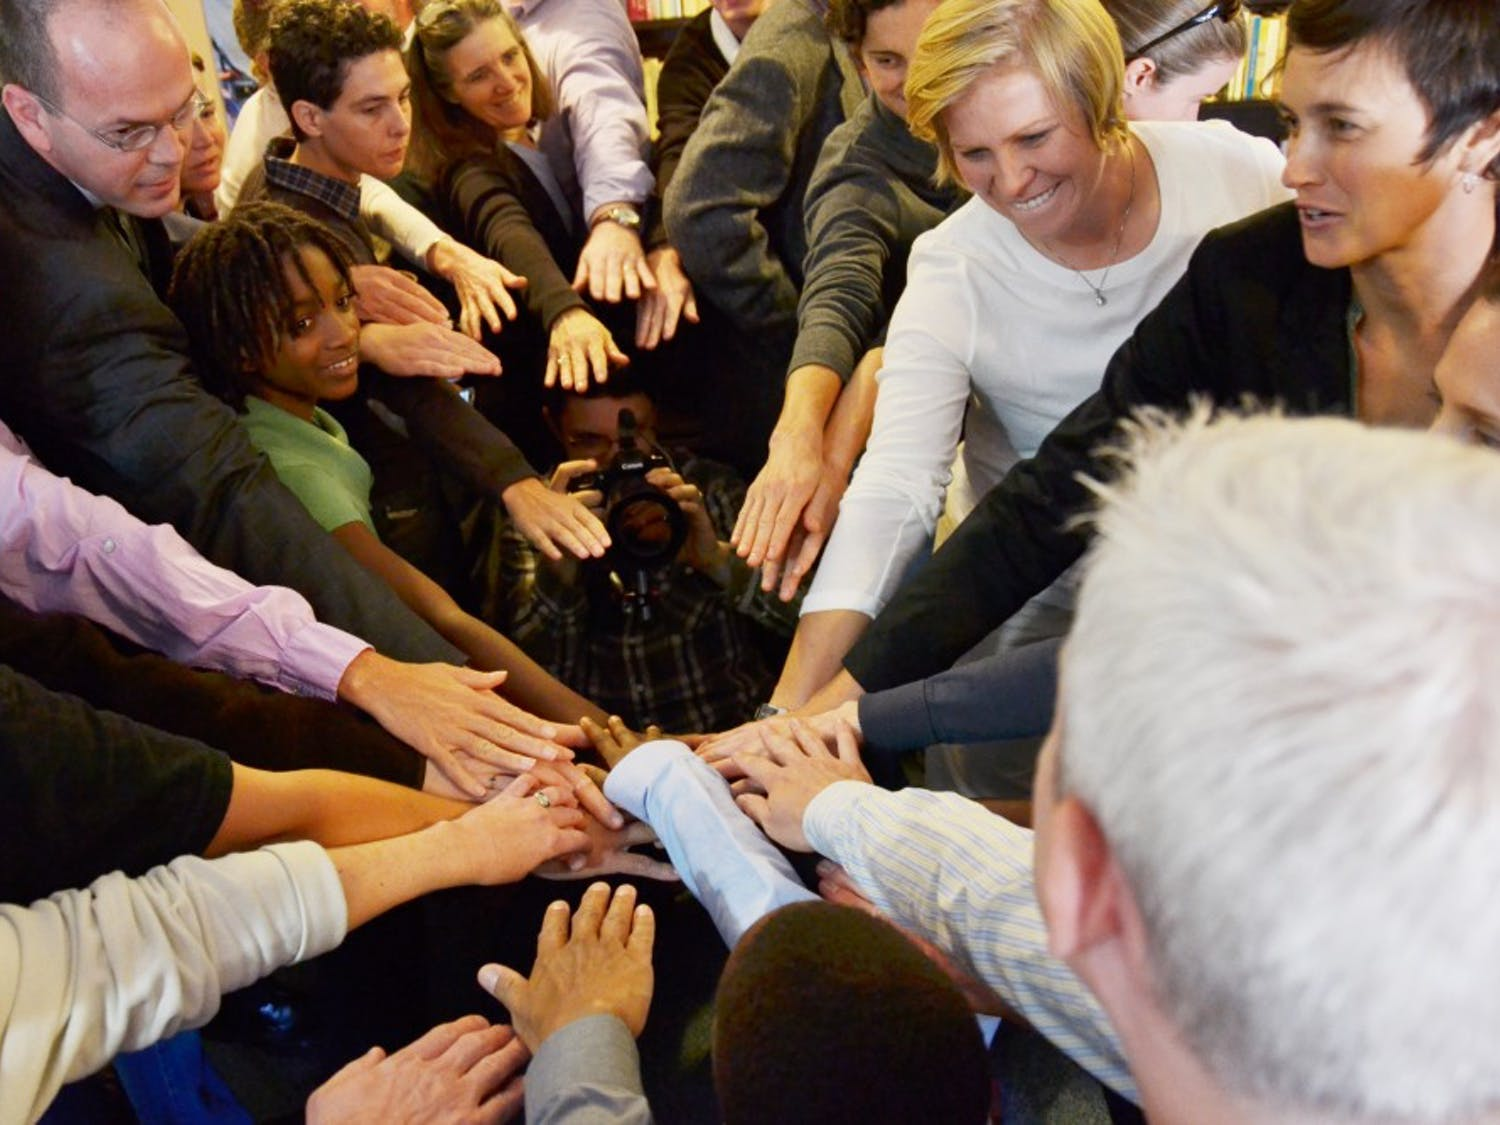 Supporters of Moore and Perez gathering for a huddle before processing to the Reister of Deeds including pastor Brian Cole (Cathedral of All Souls), executive director of Campaign for southern equality Jasmine Beach-Ferrara (right corner) and her partner, Meghann Burke, a lawyer who is helping arrange representation for the couple that will be arrested Friday